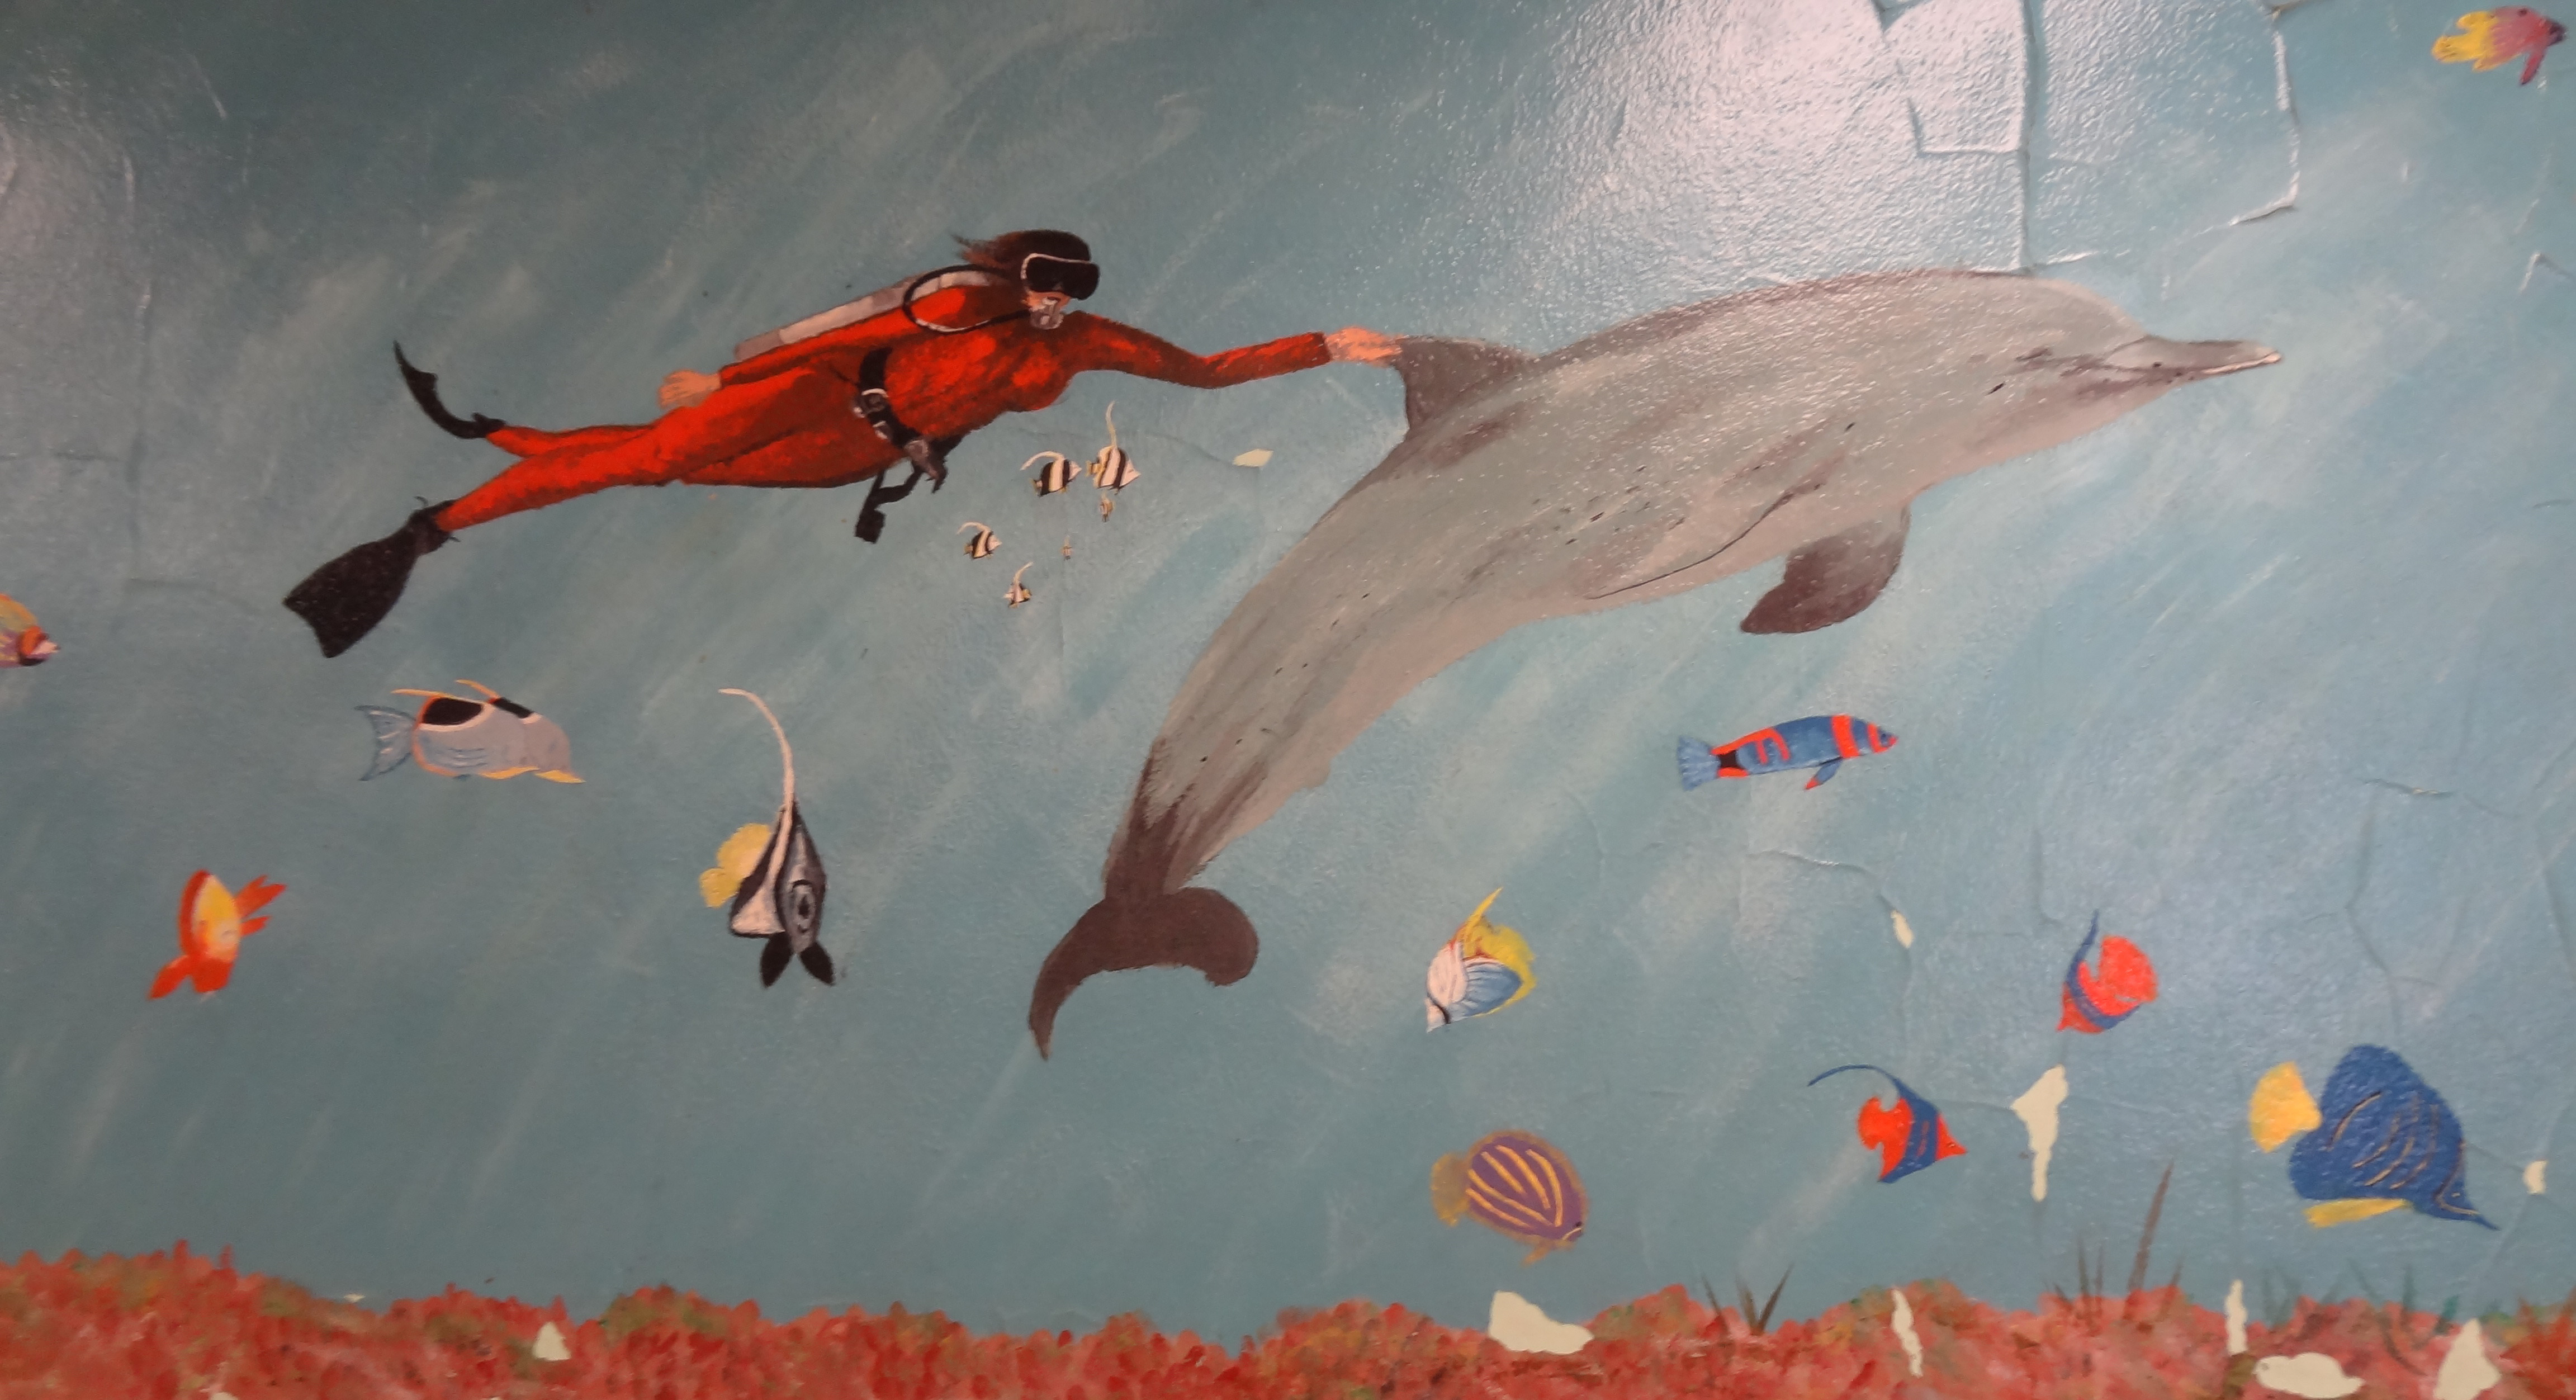 Scuba diver and dolphin, Montclair Elementary